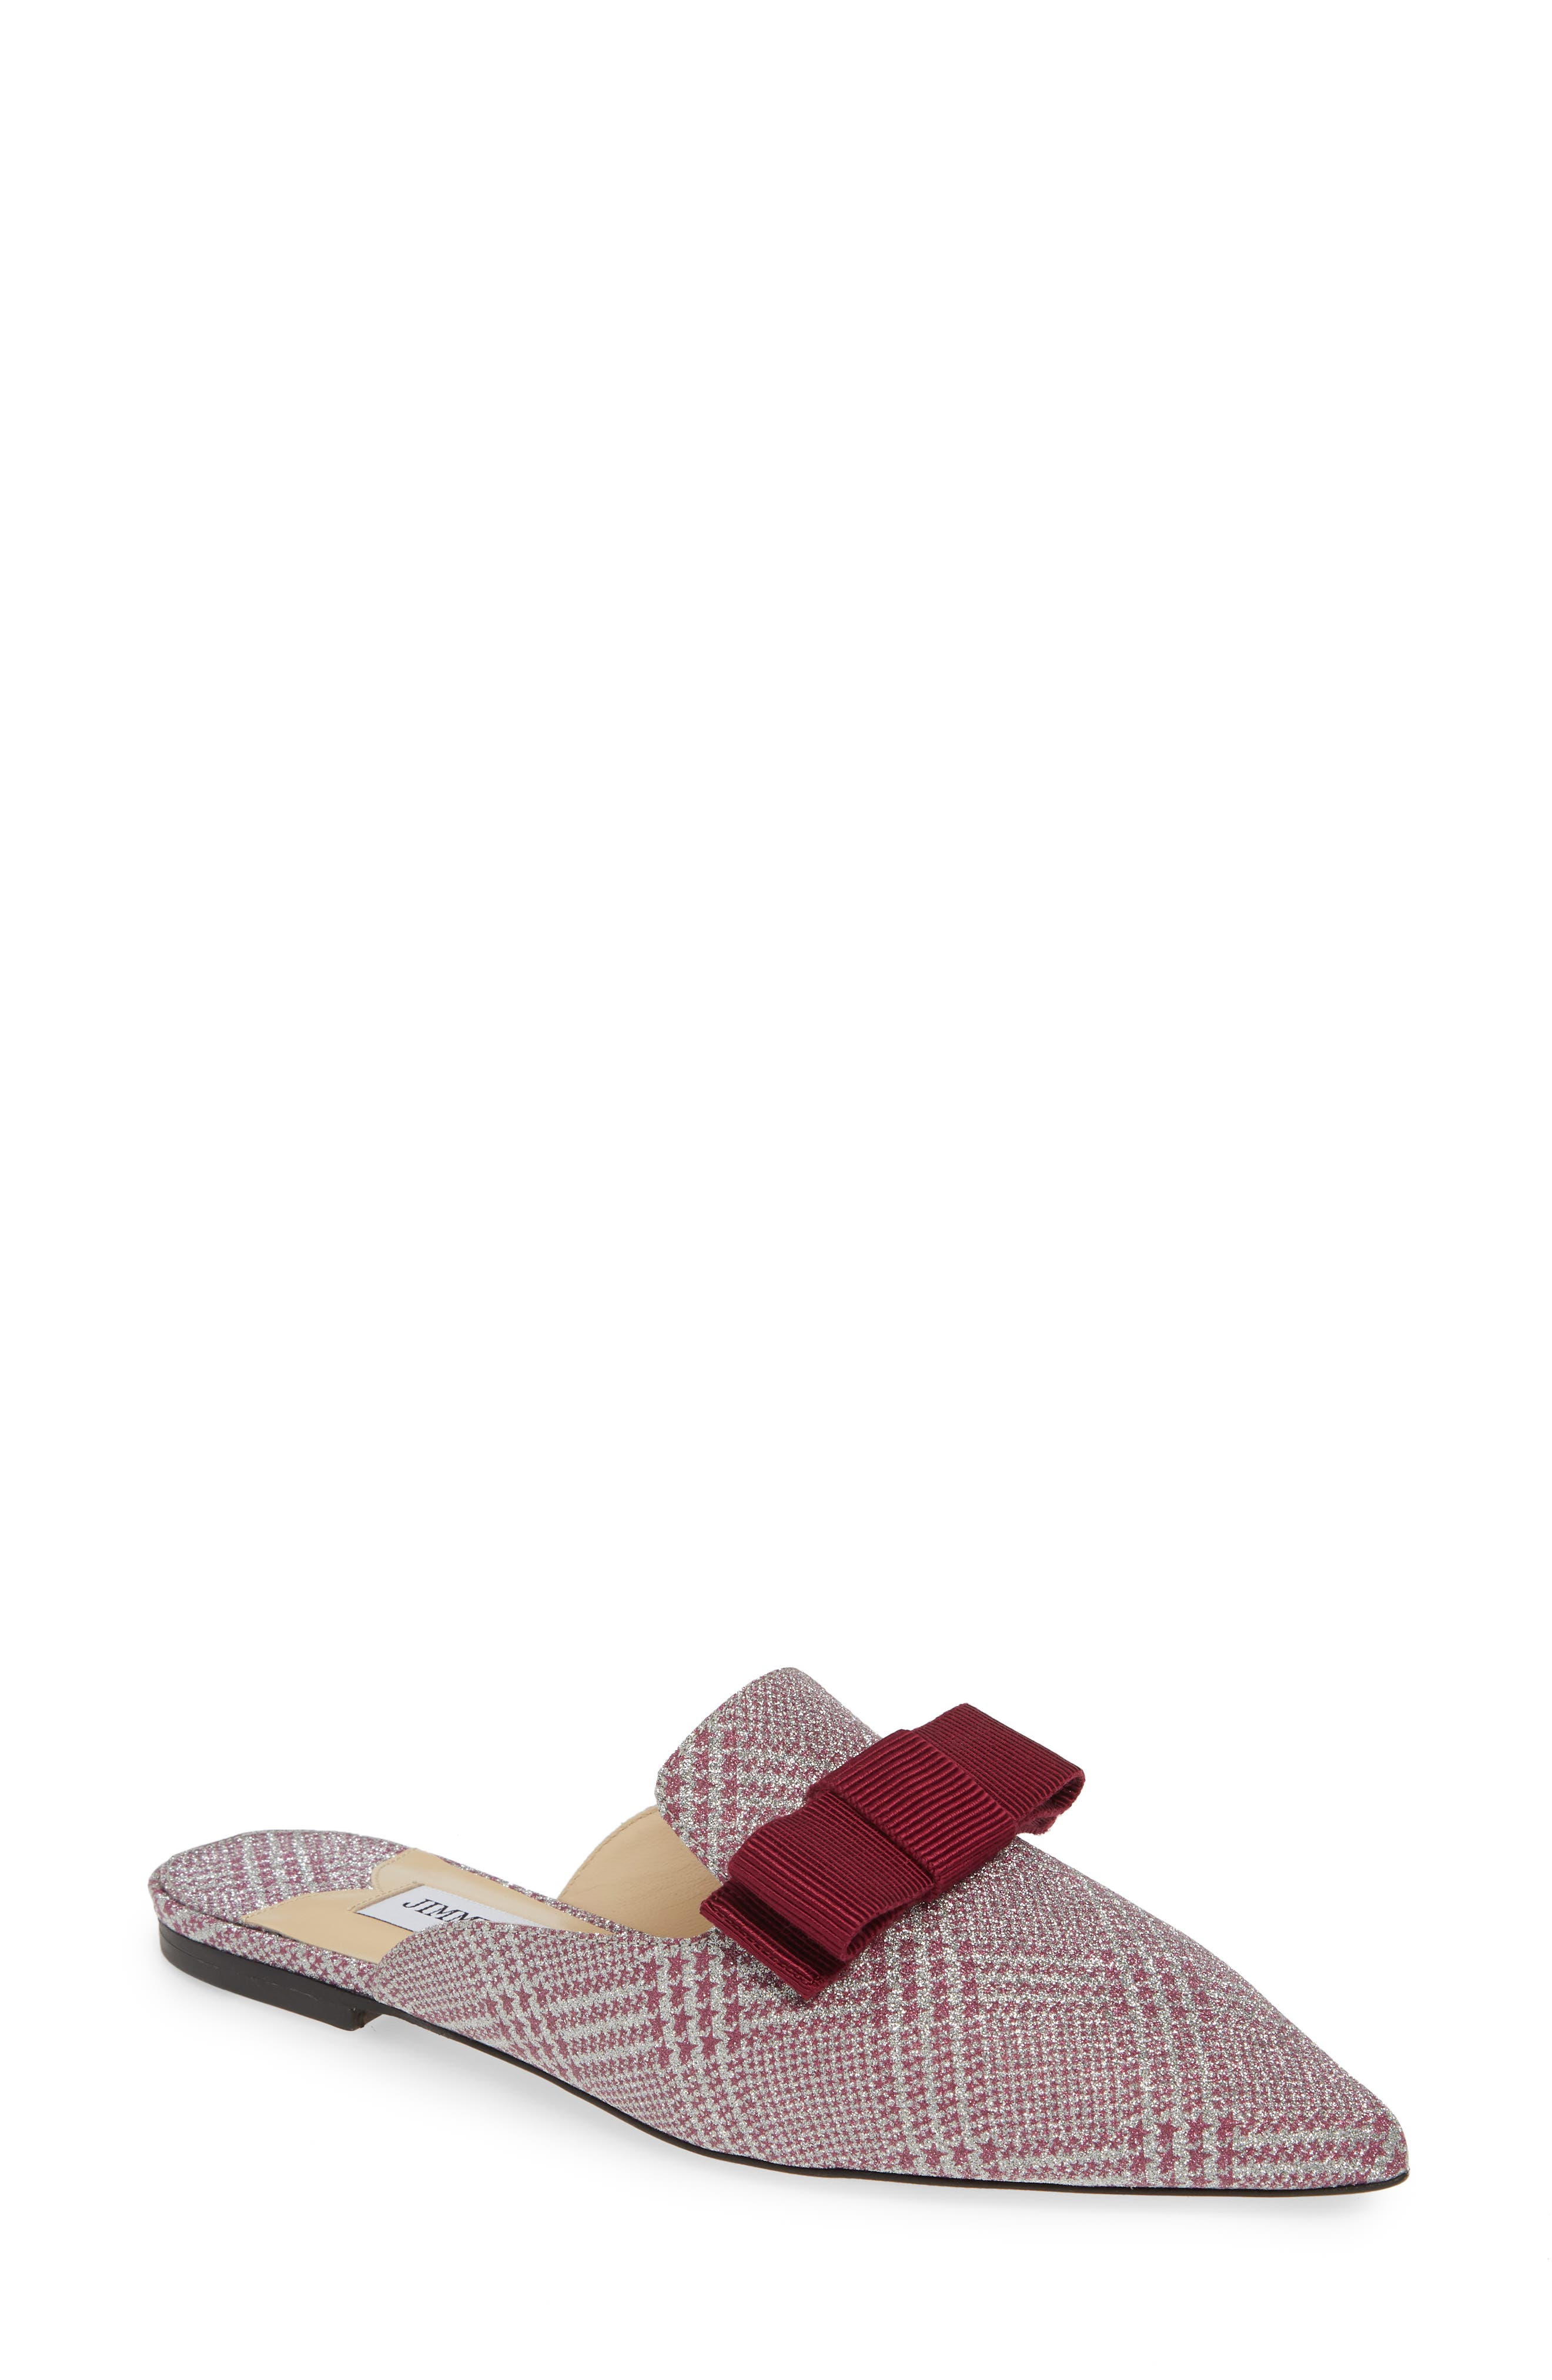 Jimmy Choo Galaxy Bow Loafer Mule, Pink